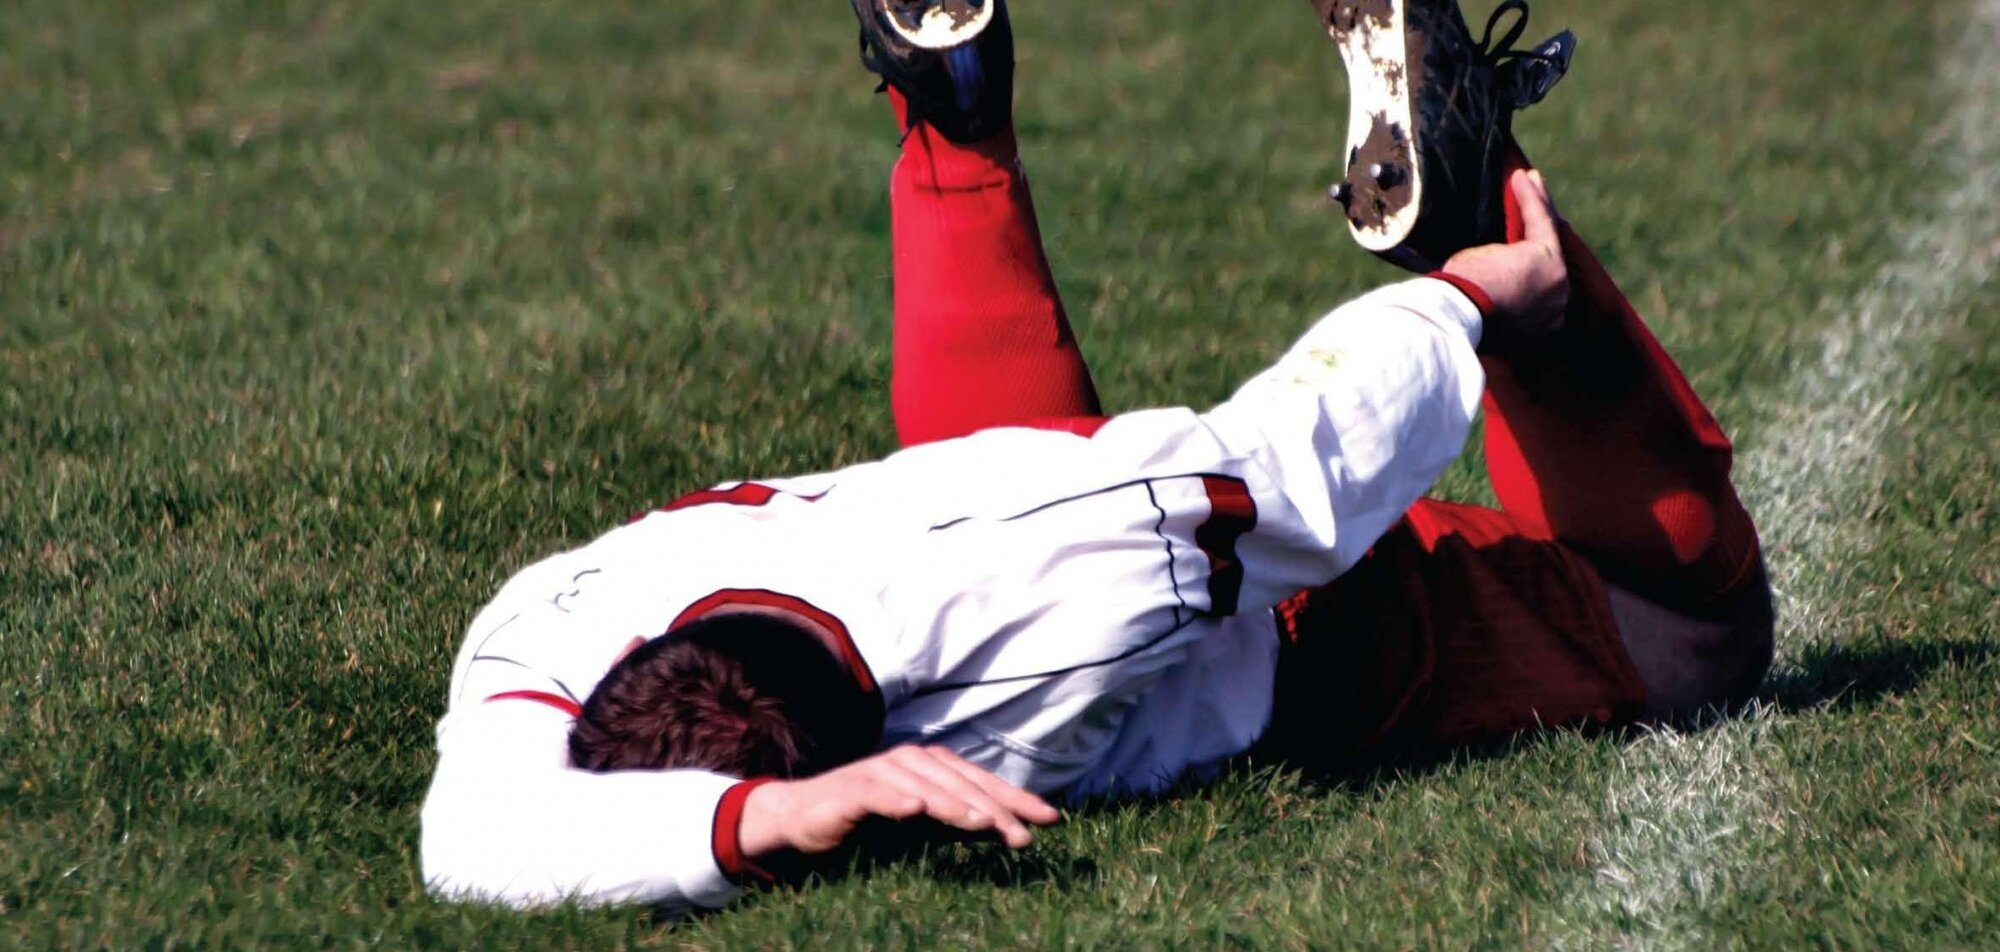 The Worst Sports Injuries